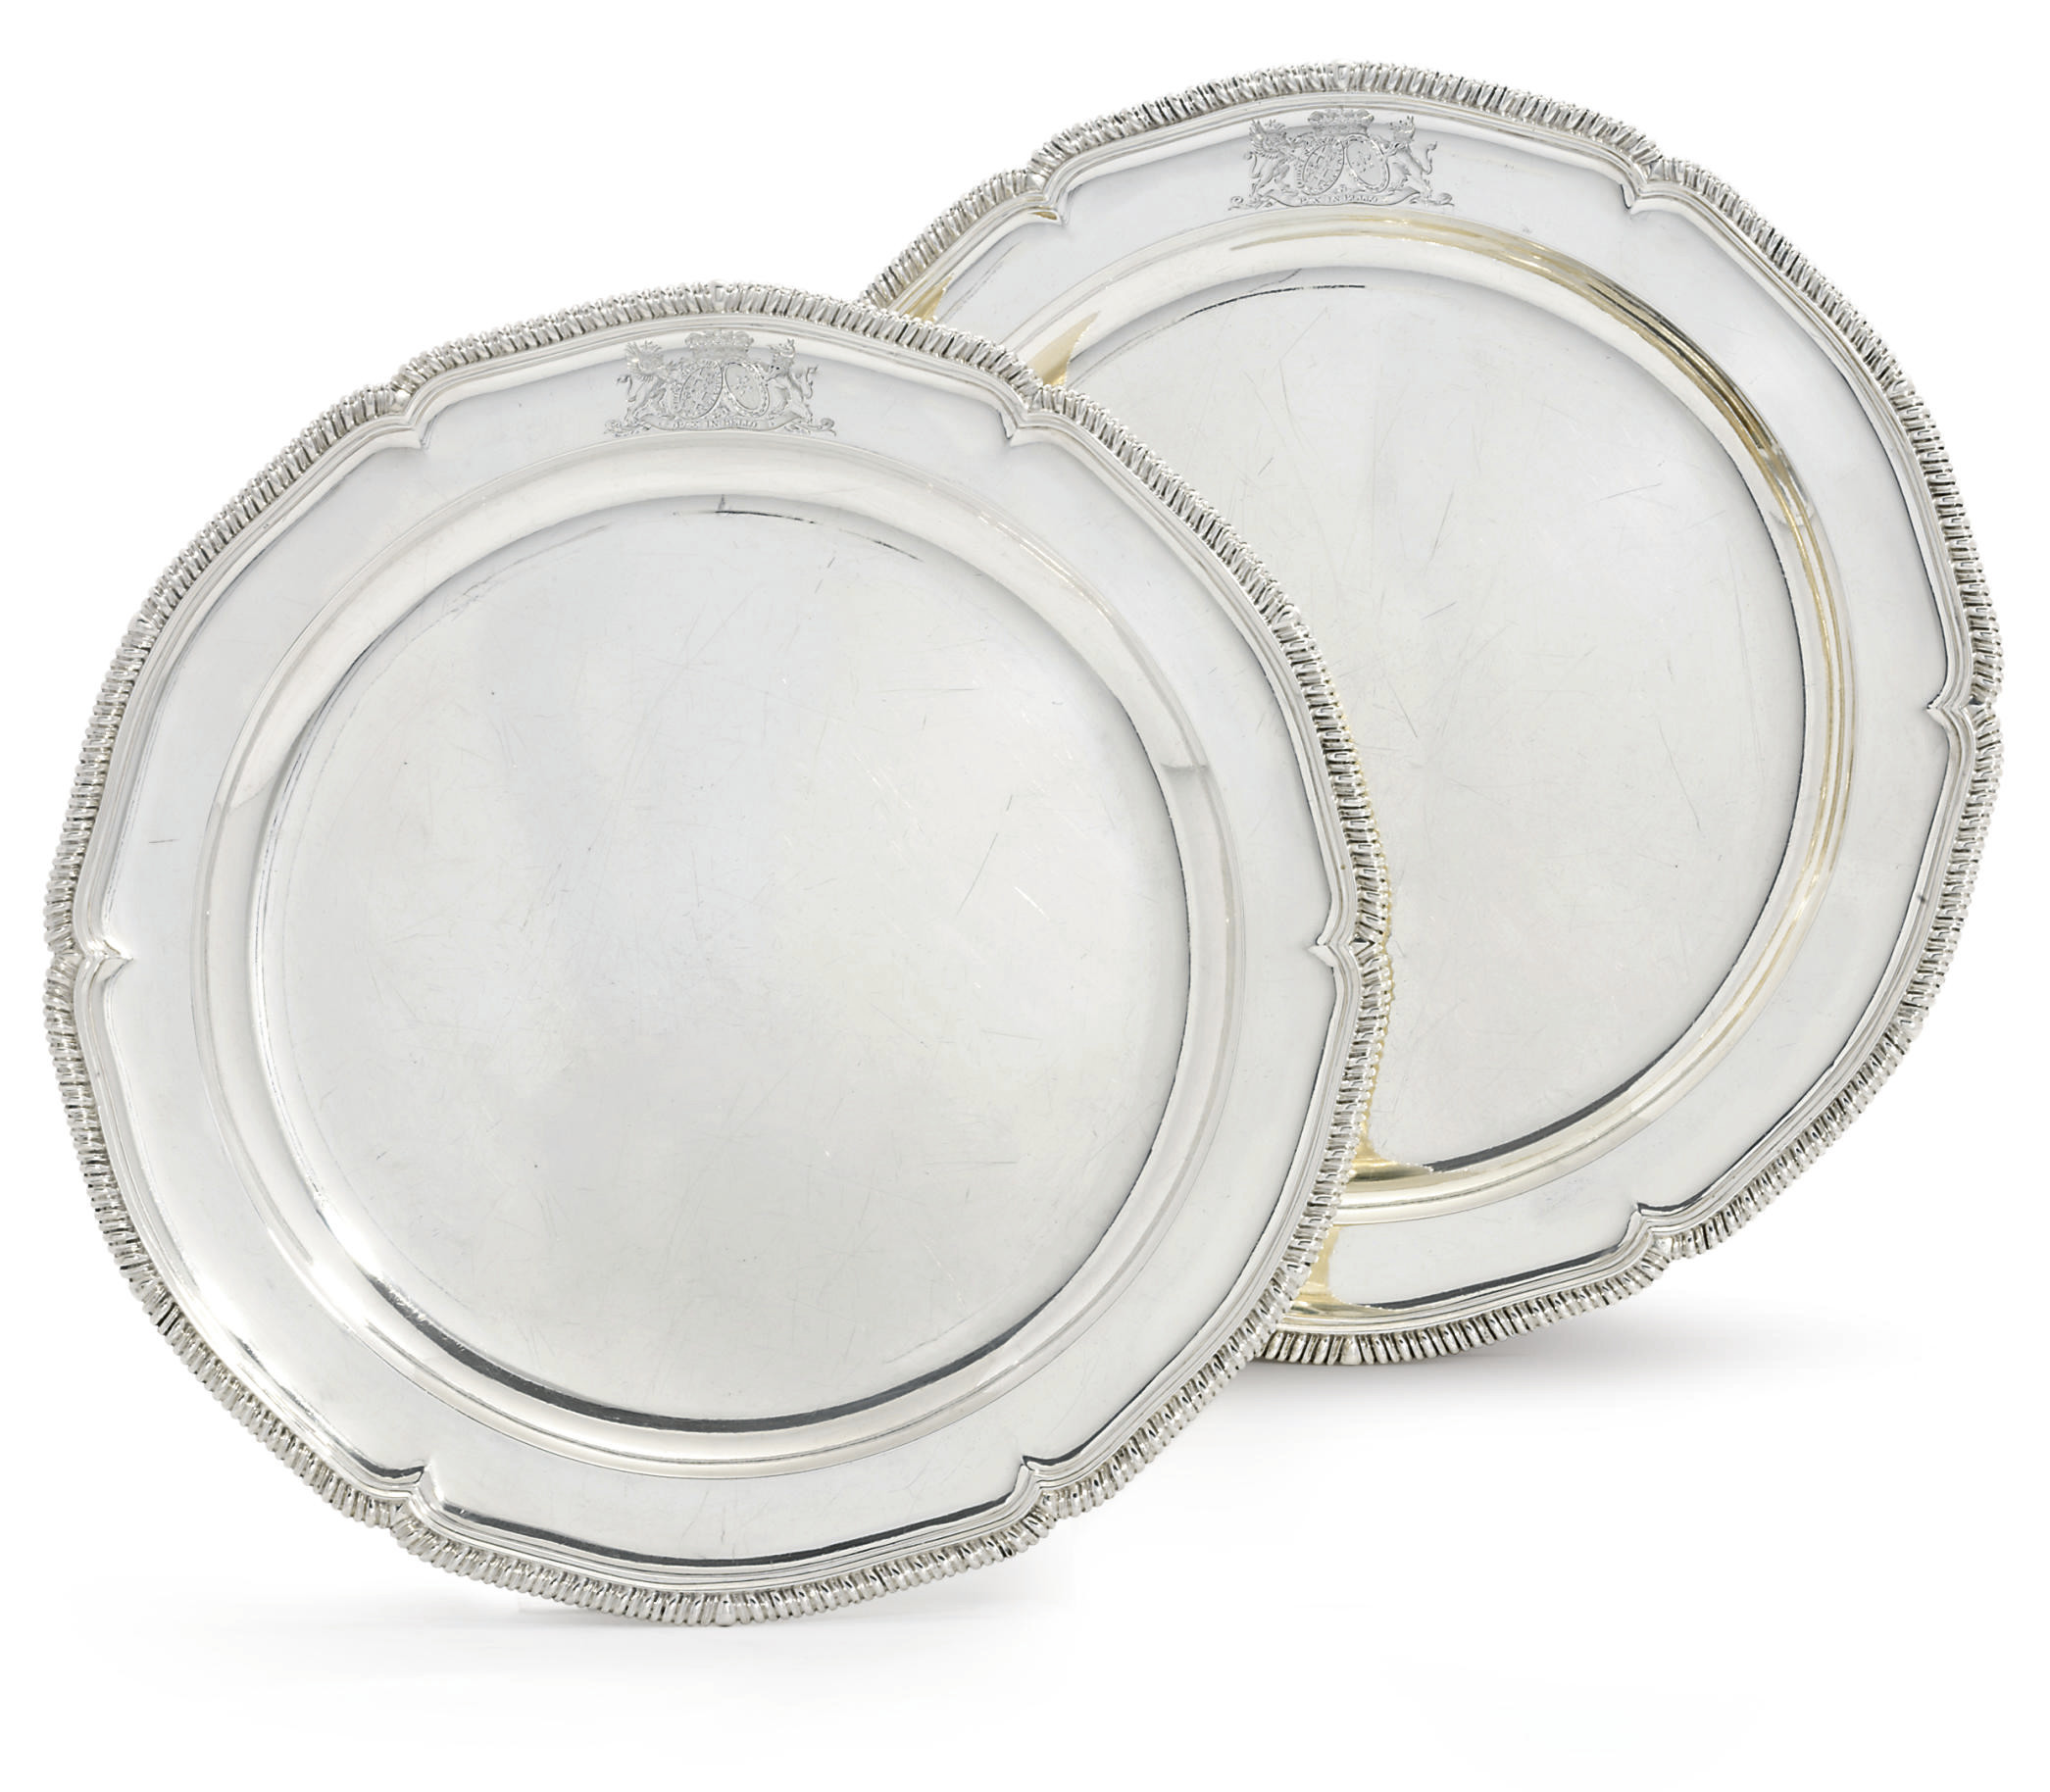 A PAIR OF GEORGE III SILVER SERVING-DISHES